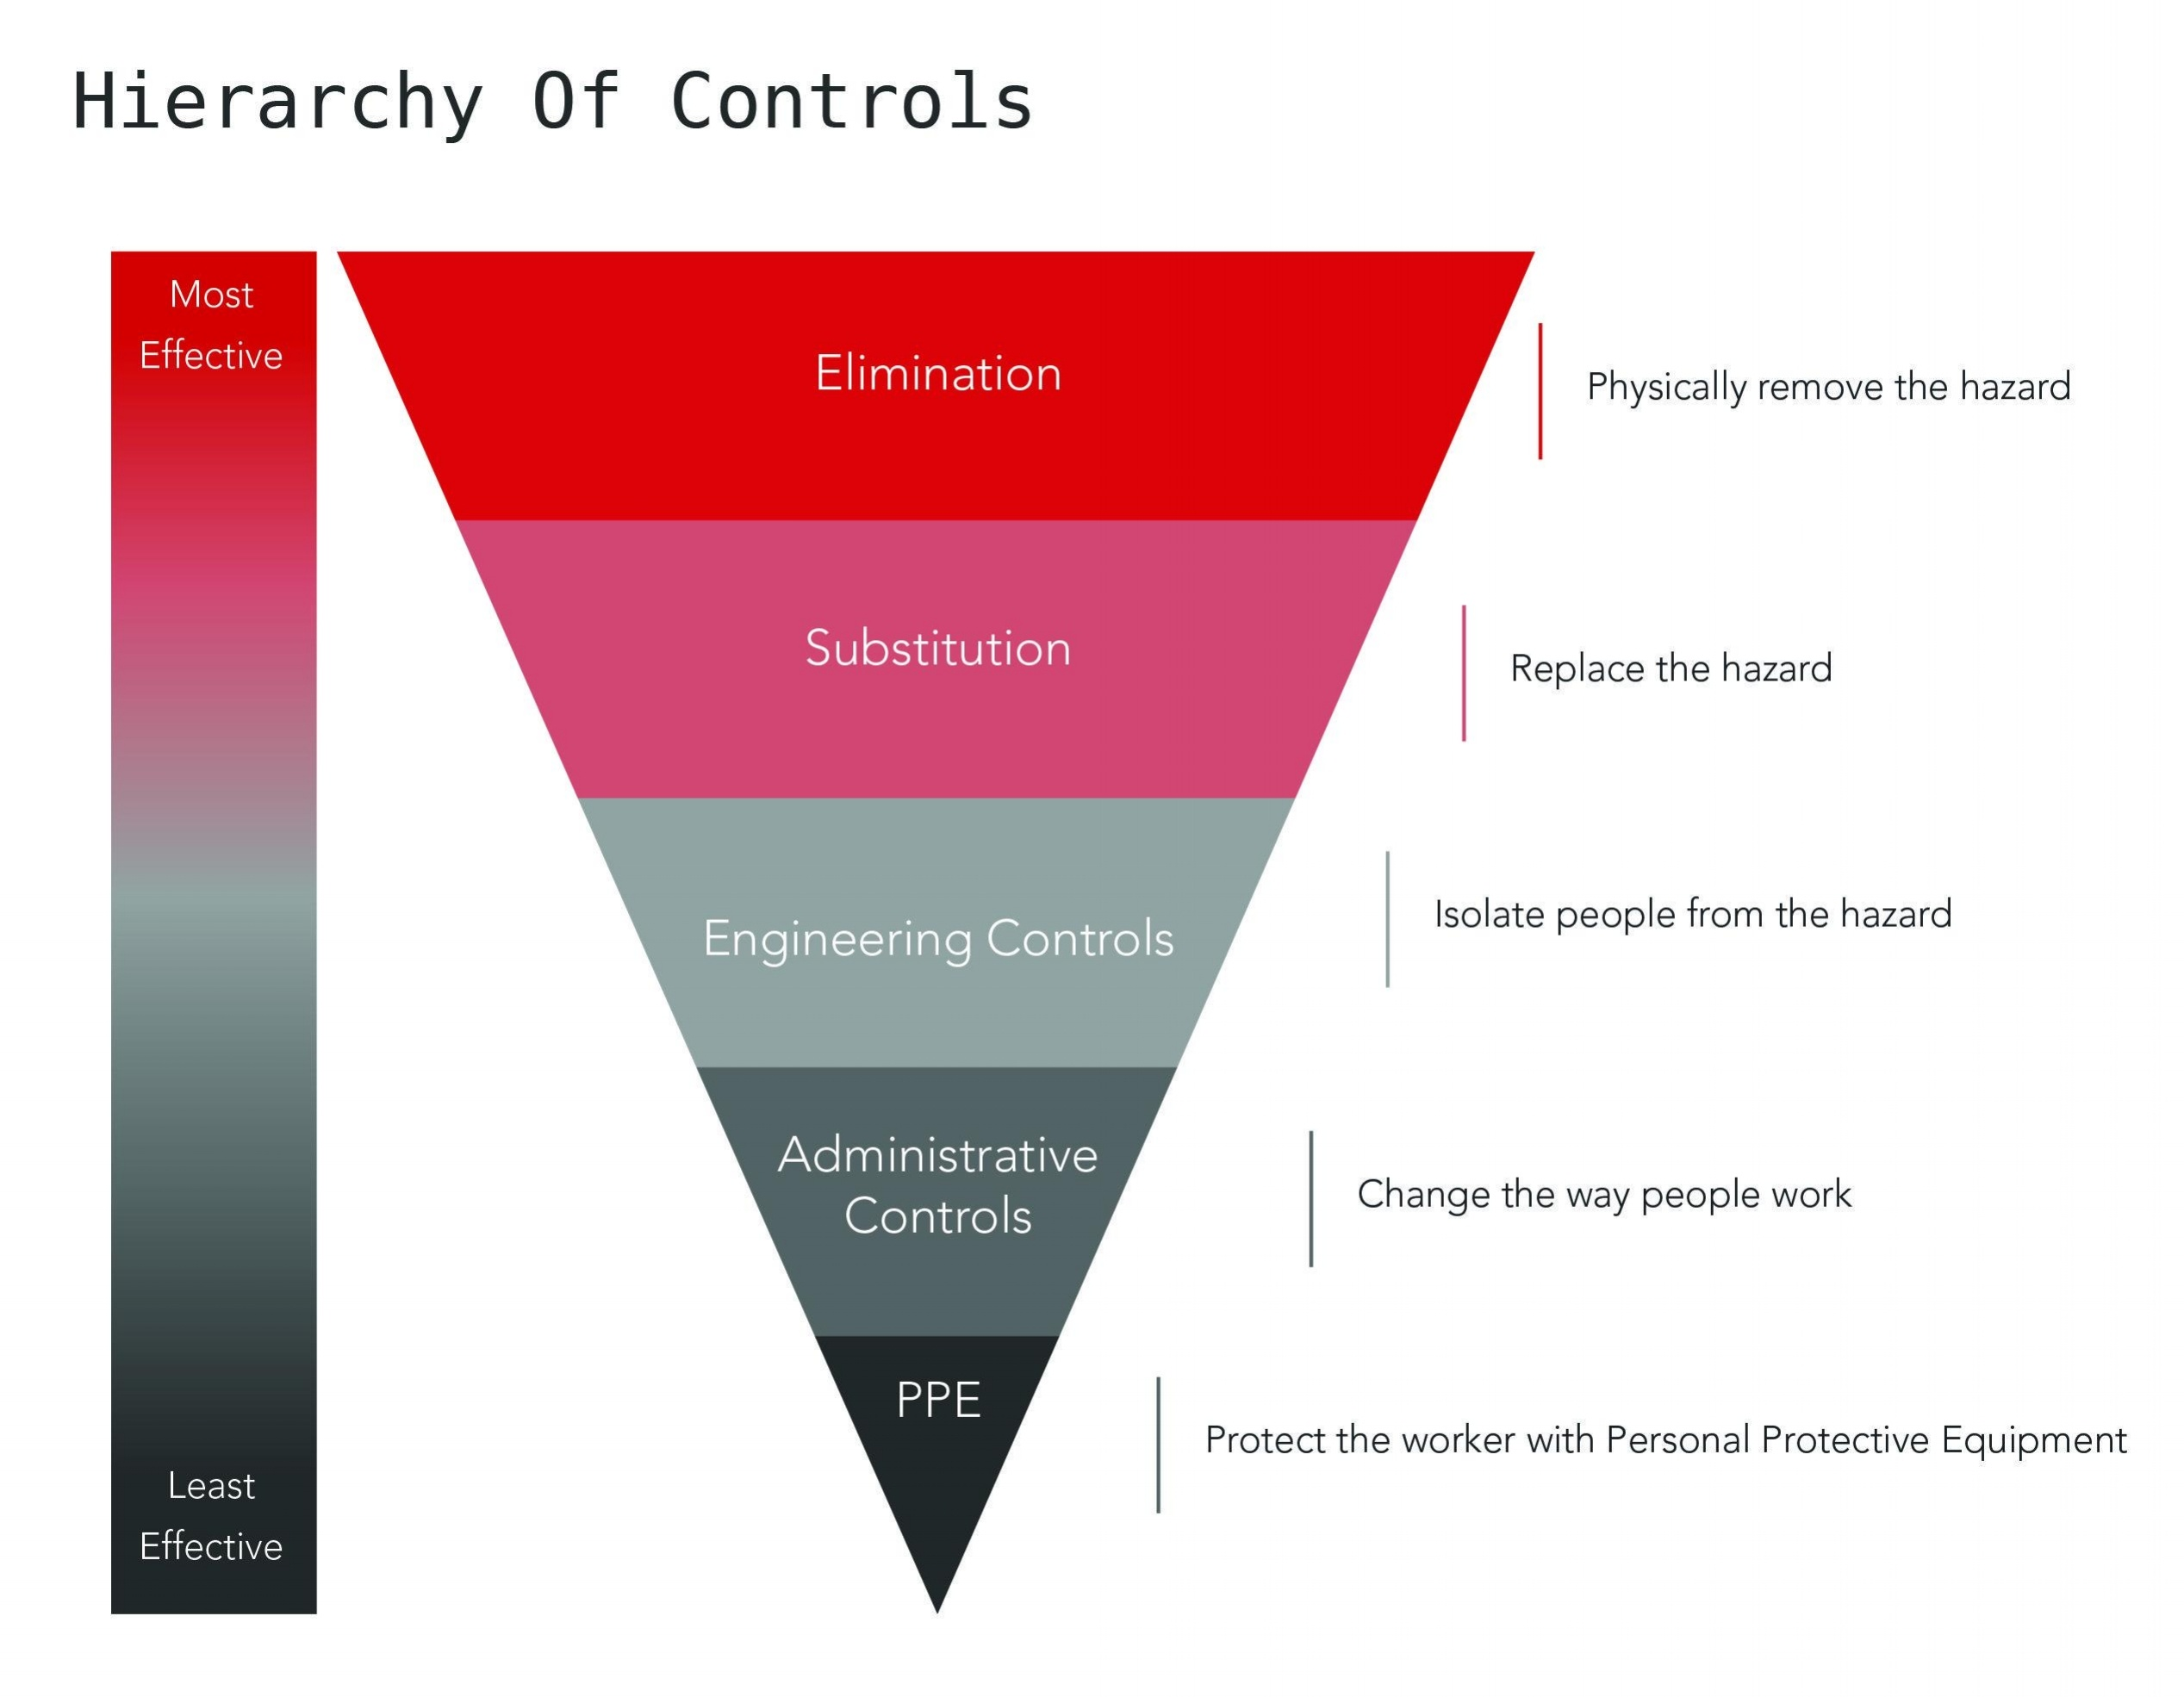 Hierarchy of controls for chemical hazards